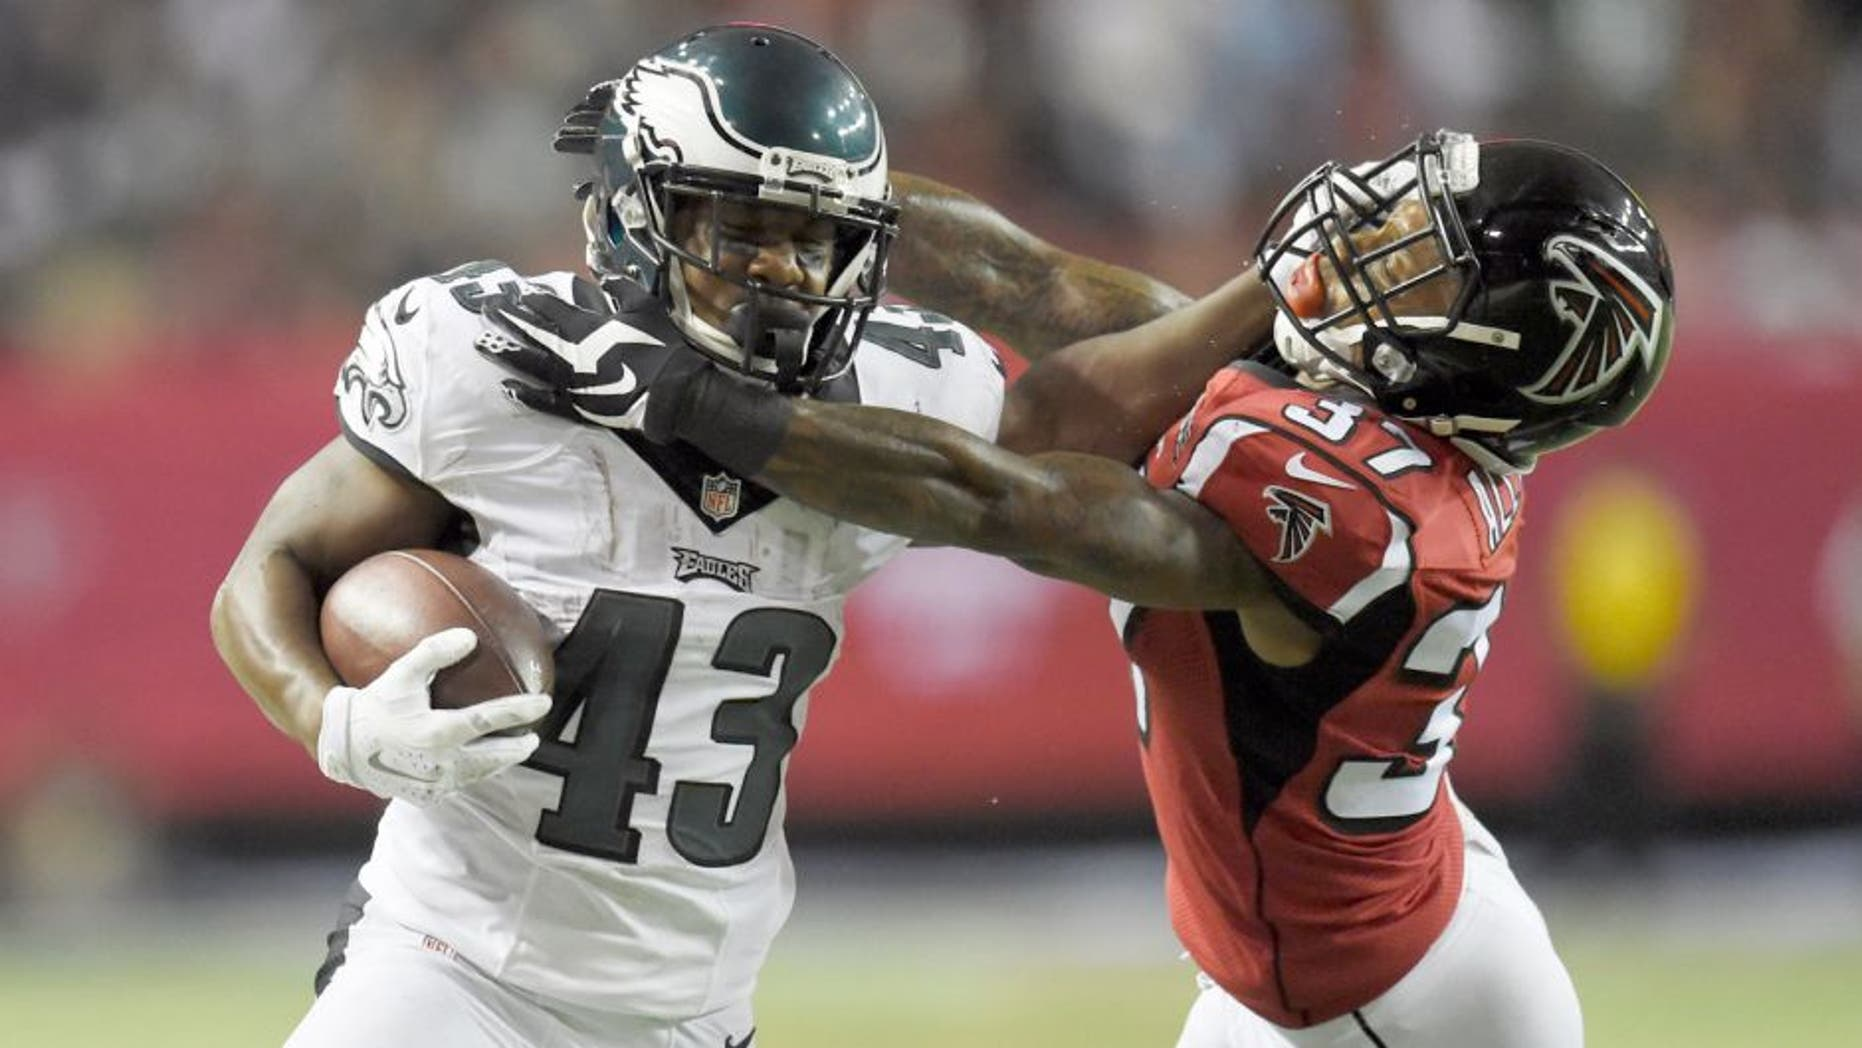 Sep 14, 2015; Atlanta, GA, USA; Philadelphia Eagles running back Darren Sproles (43) is tackled by Atlanta Falcons cornerback Ricardo Allen (37) in the third quarter at the Georgia Dome. Mandatory Credit: Dale Zanine-USA TODAY Sports